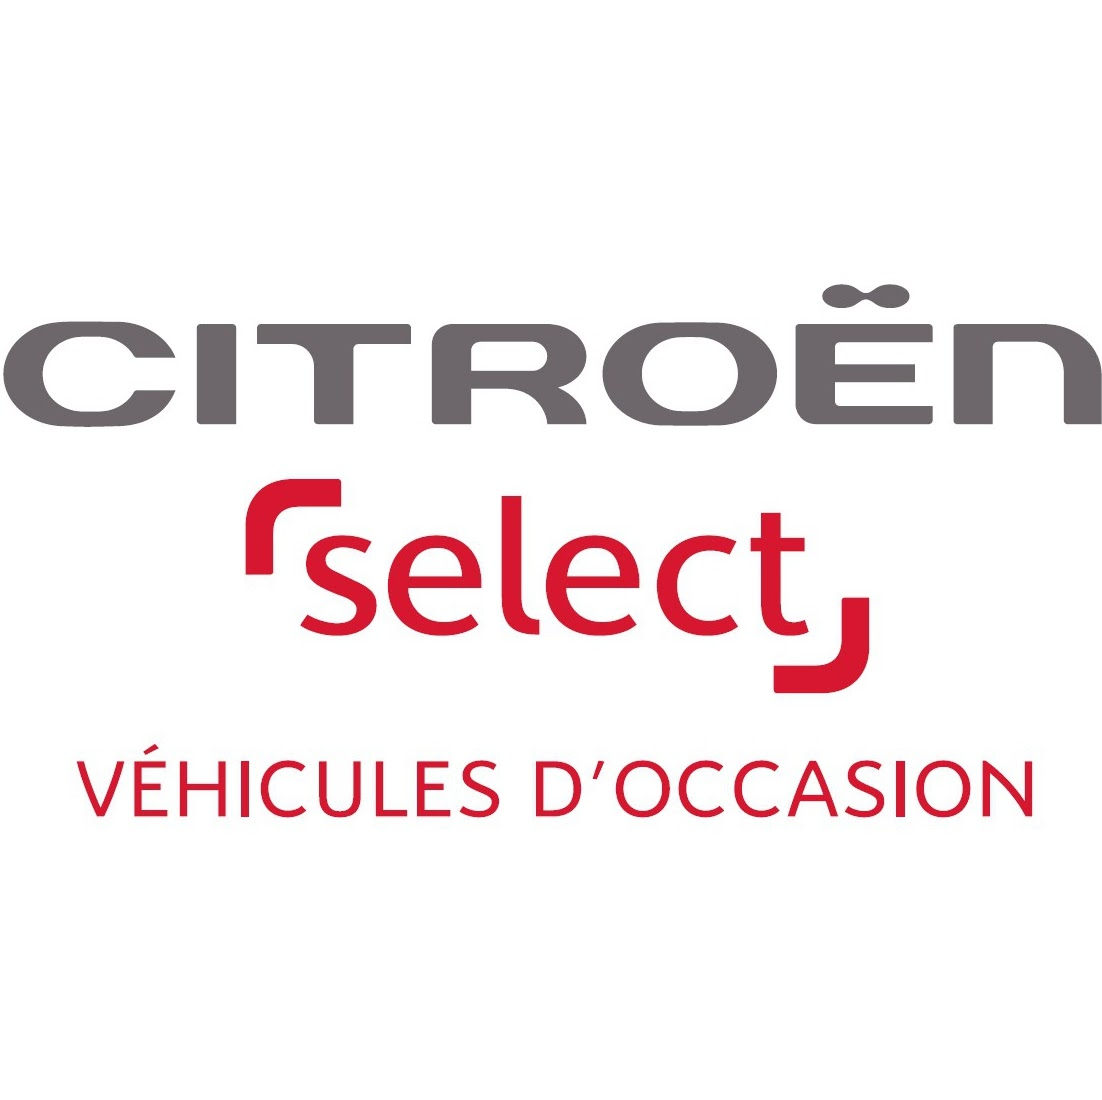 citroen vernon concessionnaire citroen vernon auto. Black Bedroom Furniture Sets. Home Design Ideas